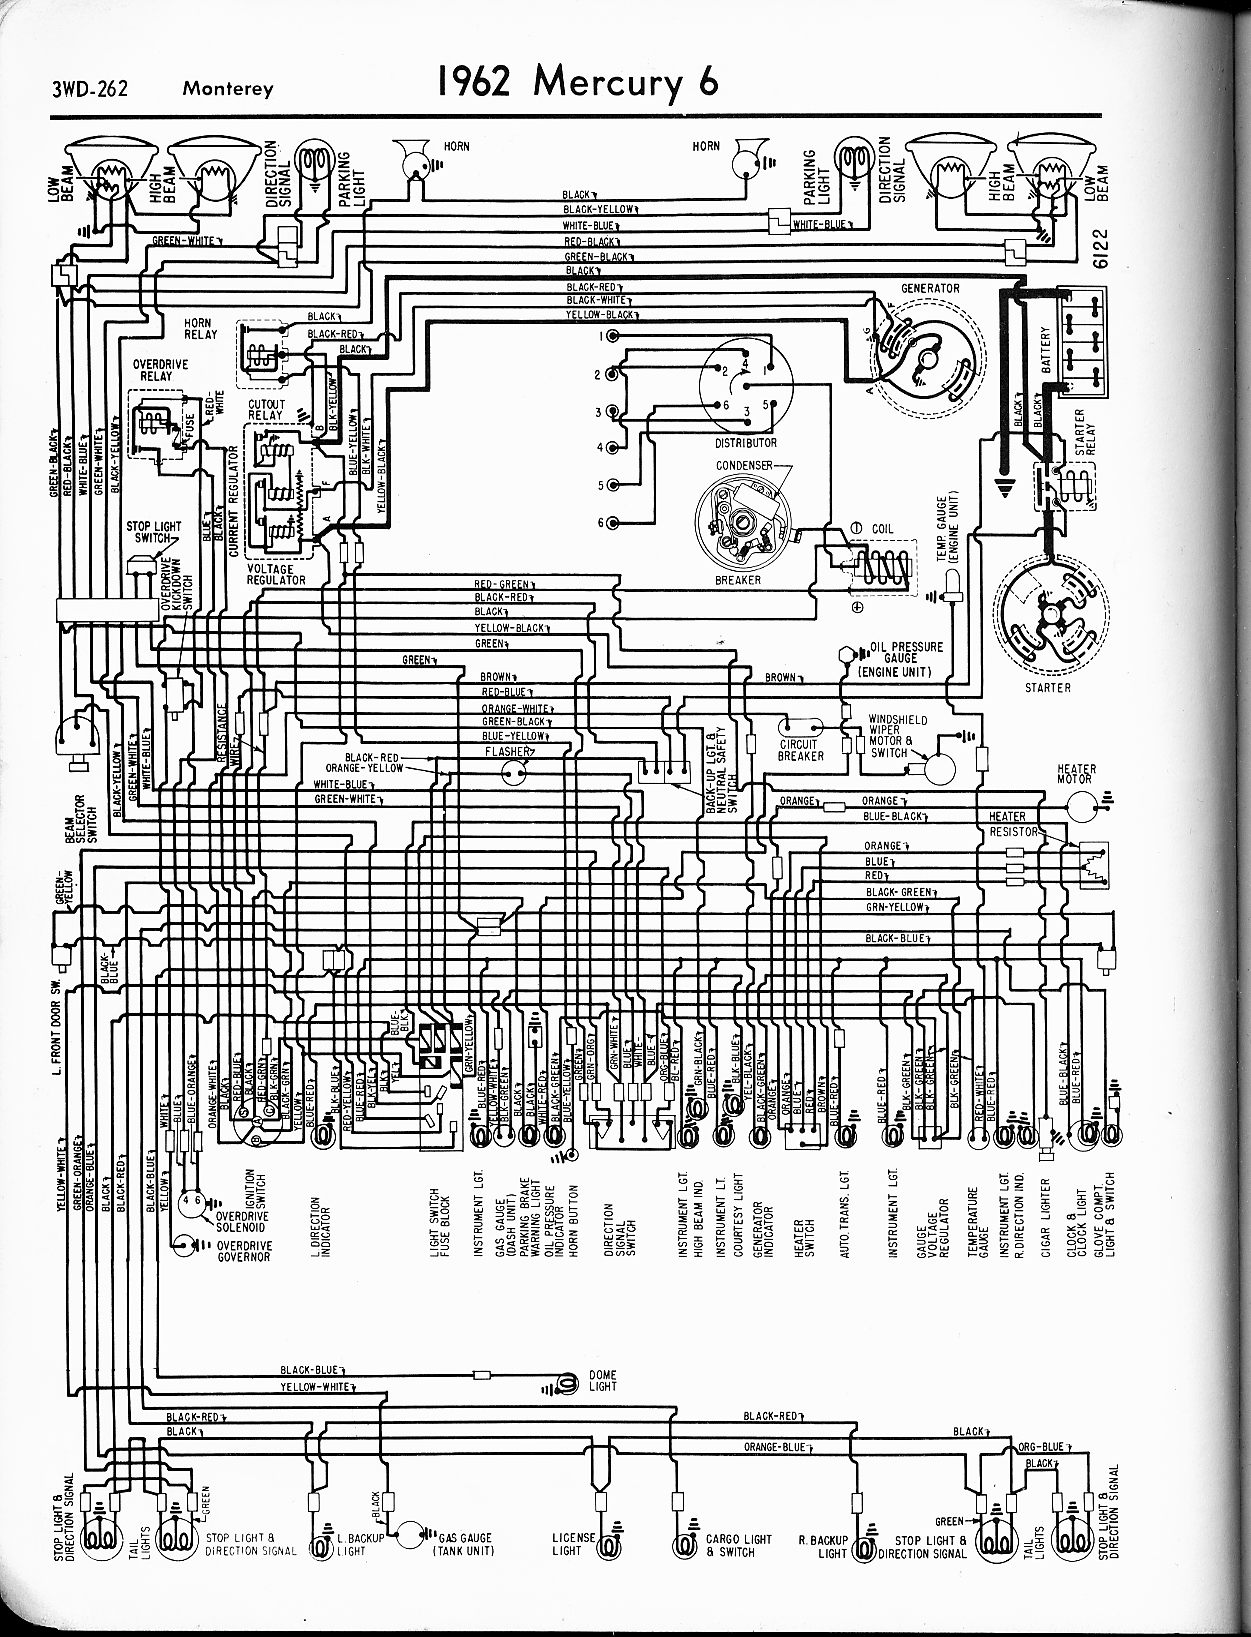 MWire5765 262 mercury wiring diagrams the old car manual project